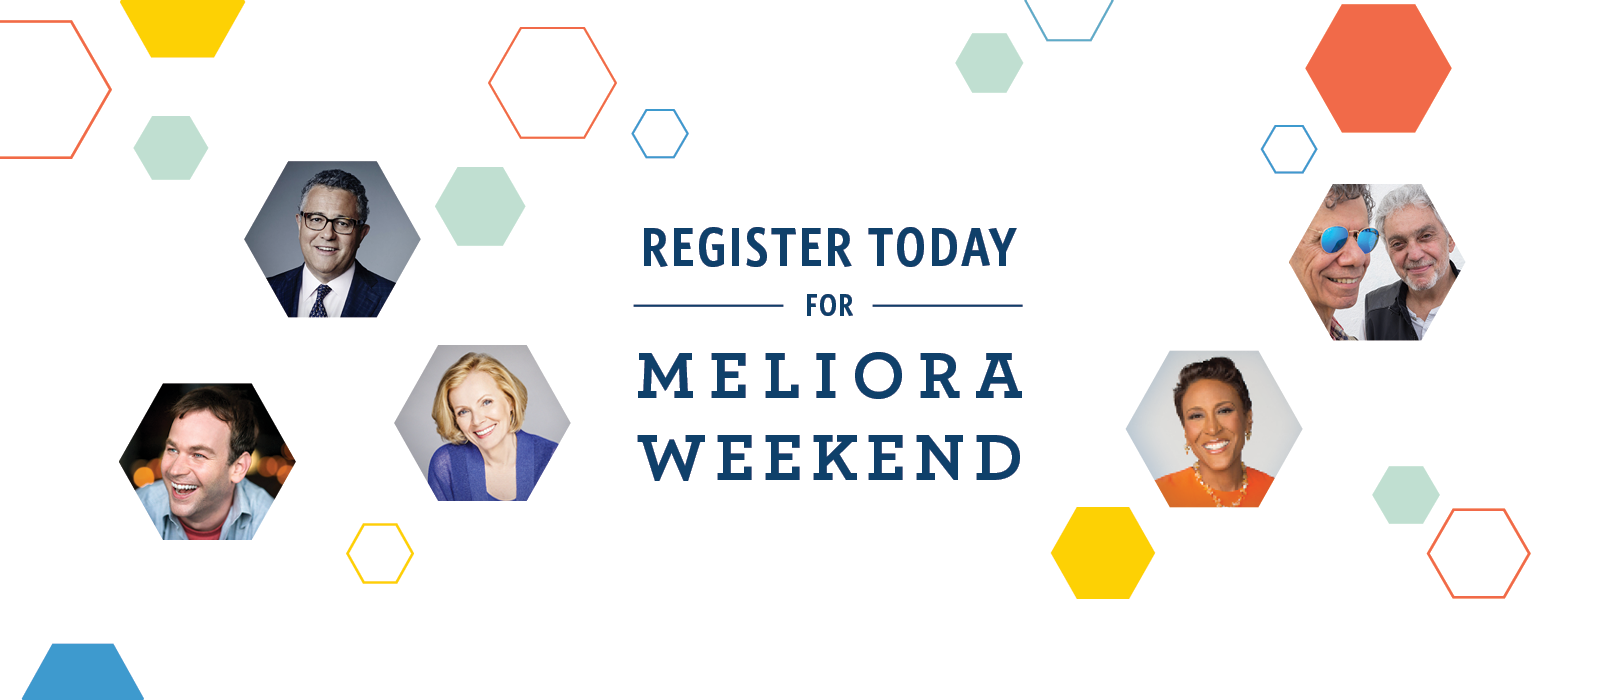 Meliora Weekend